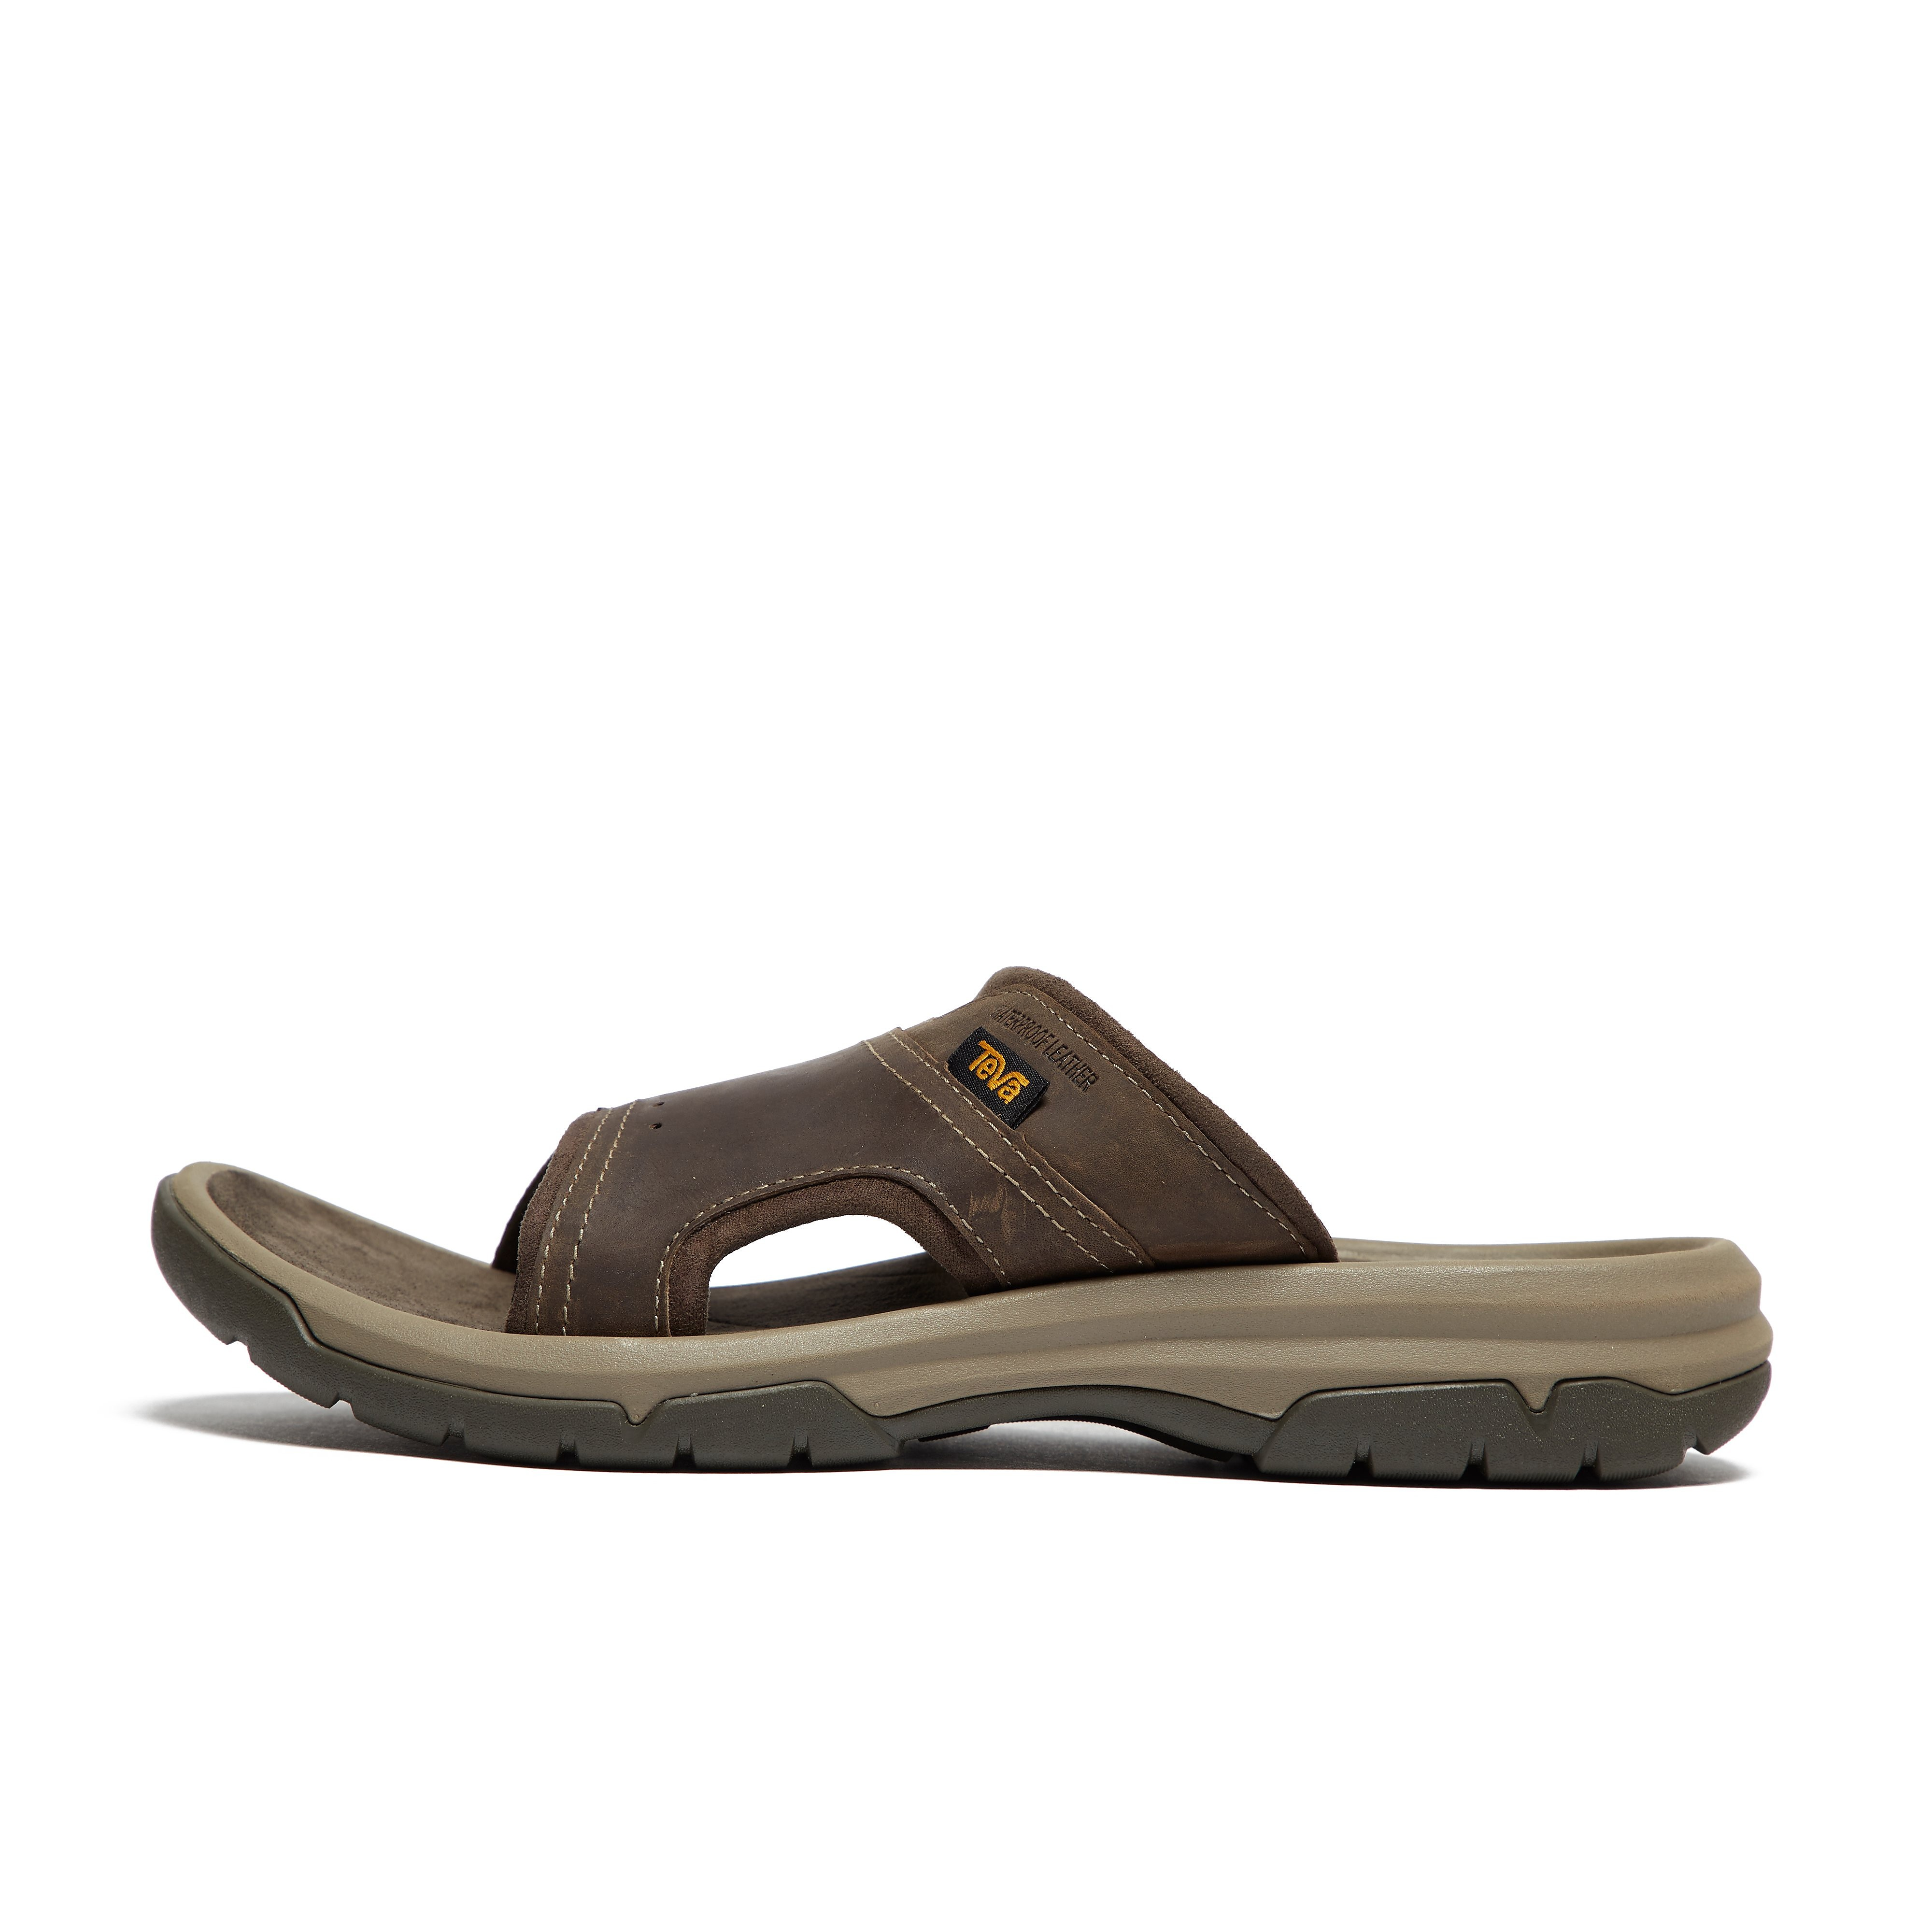 Teva Langdon Slide Men's Walking Sandals